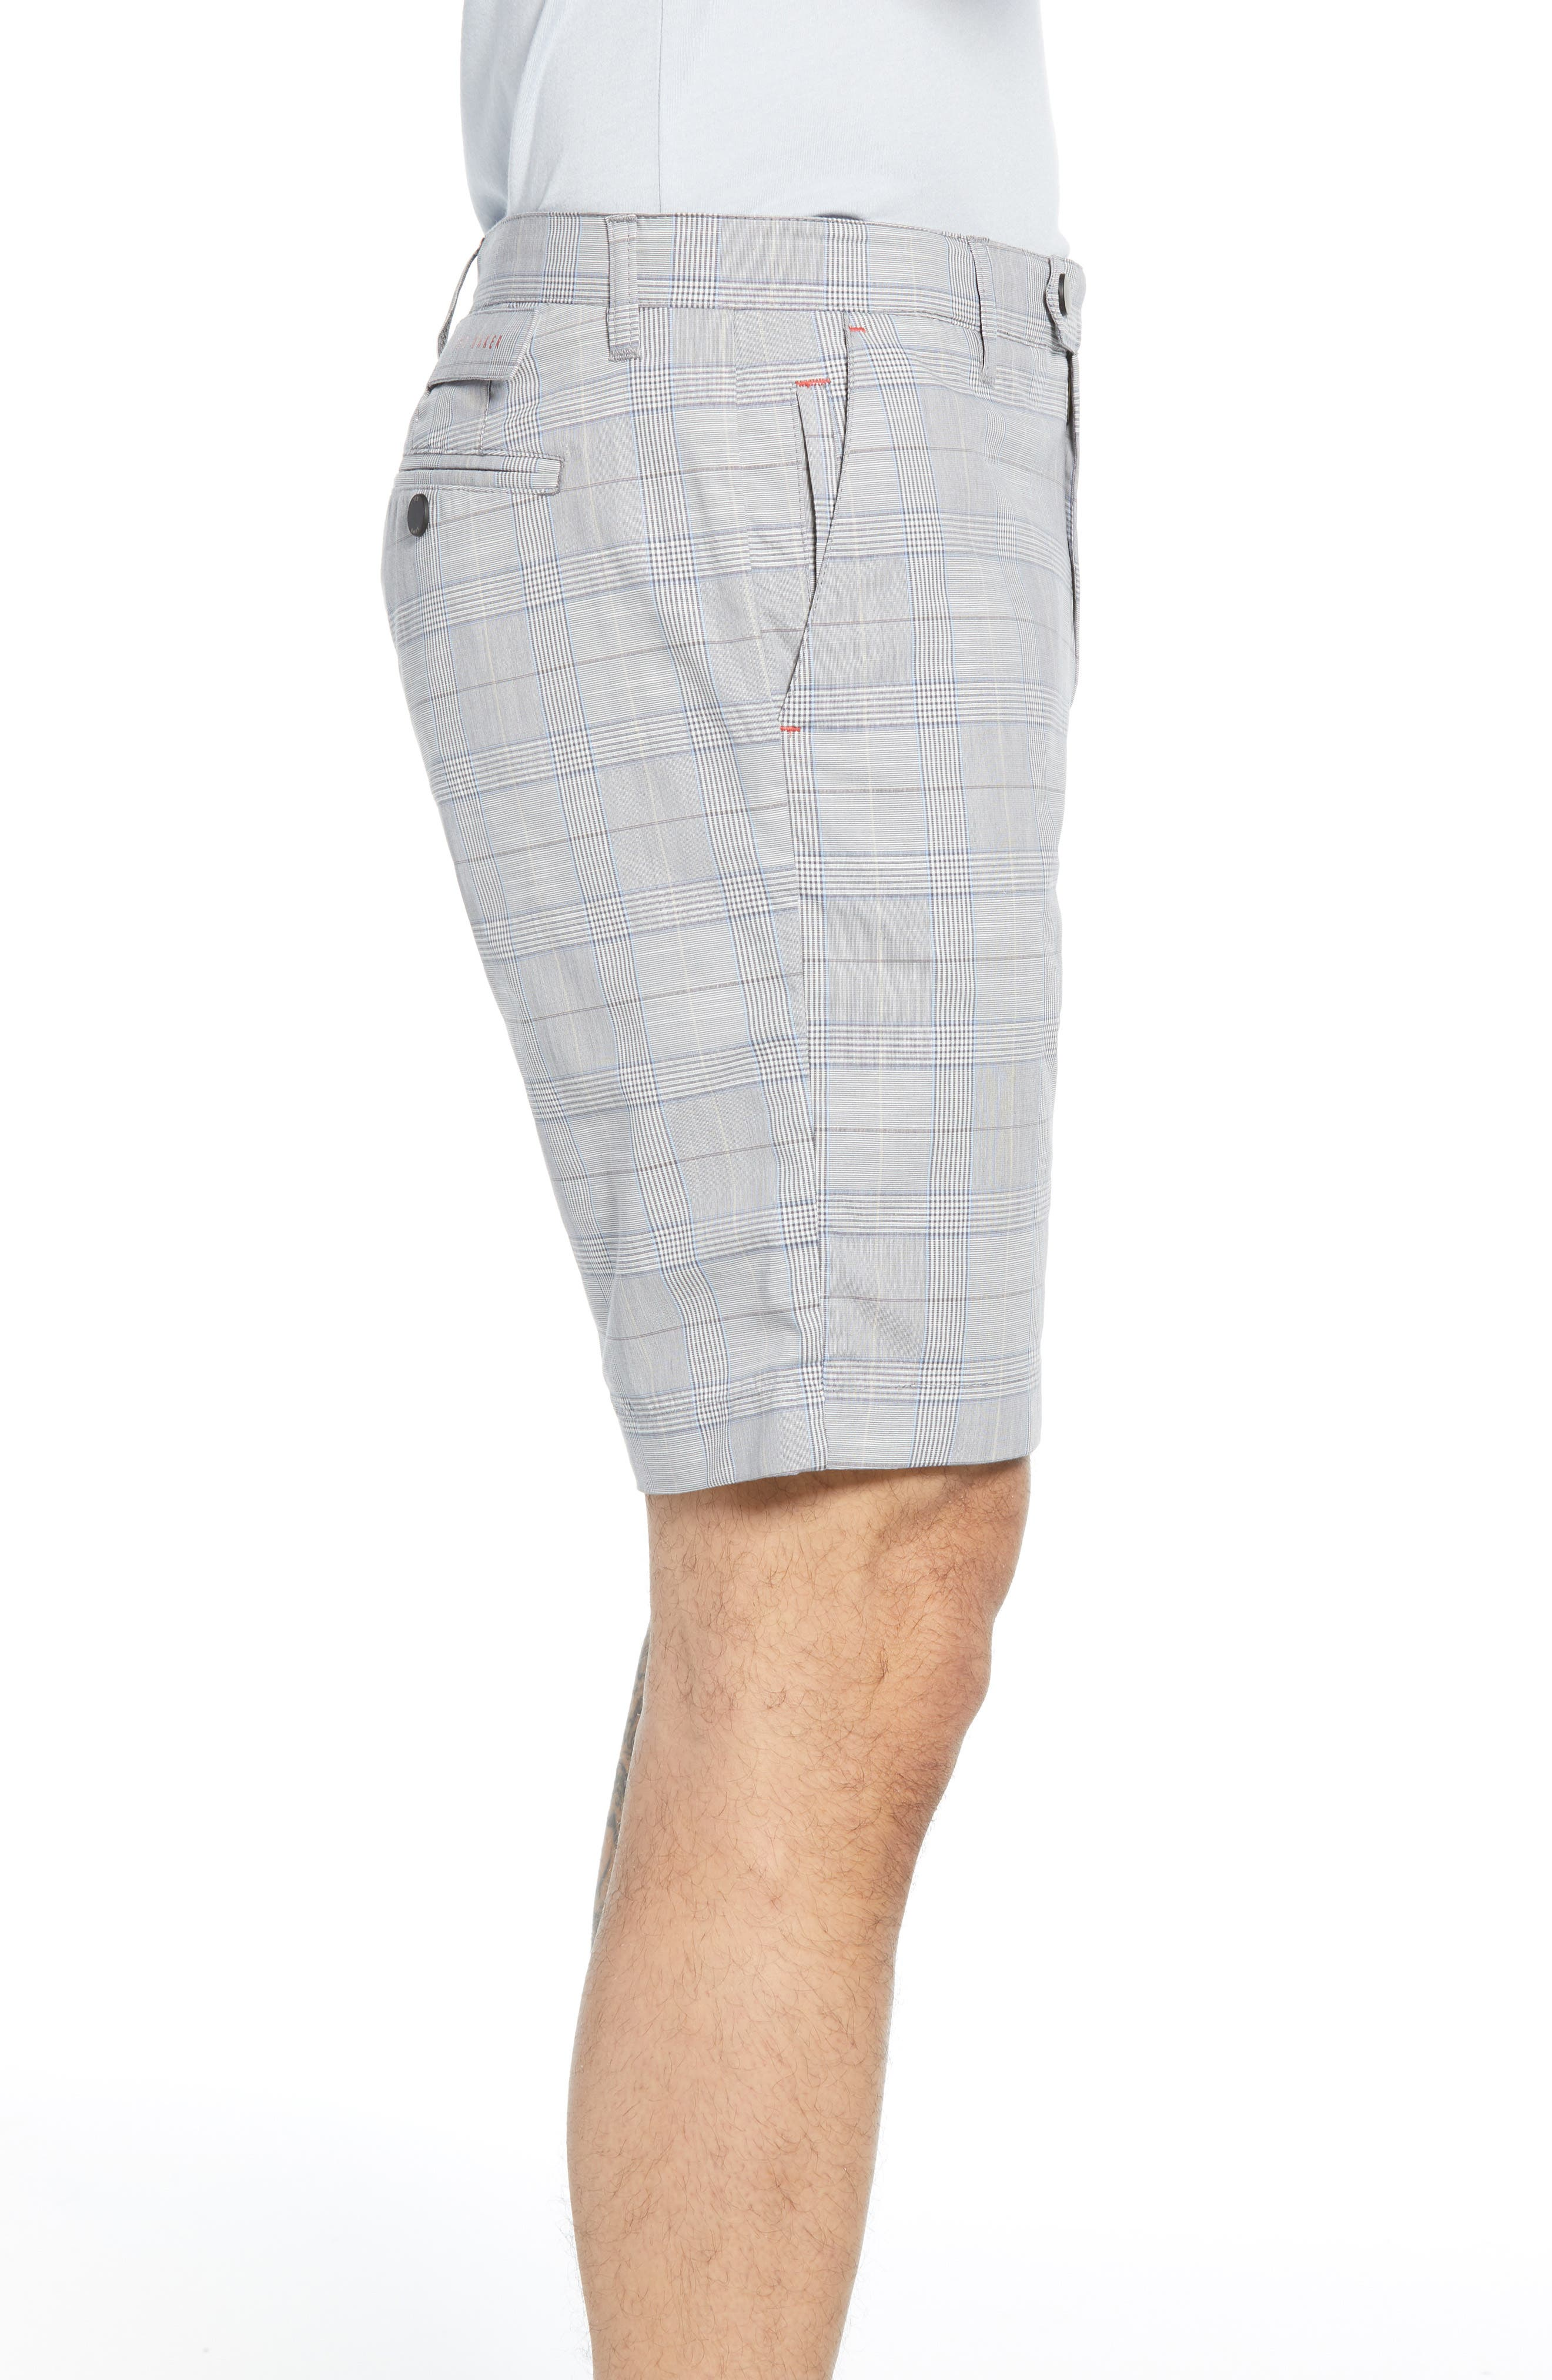 TED BAKER LONDON, Easiee Slim Fit Check Golf Shorts, Alternate thumbnail 3, color, GREY